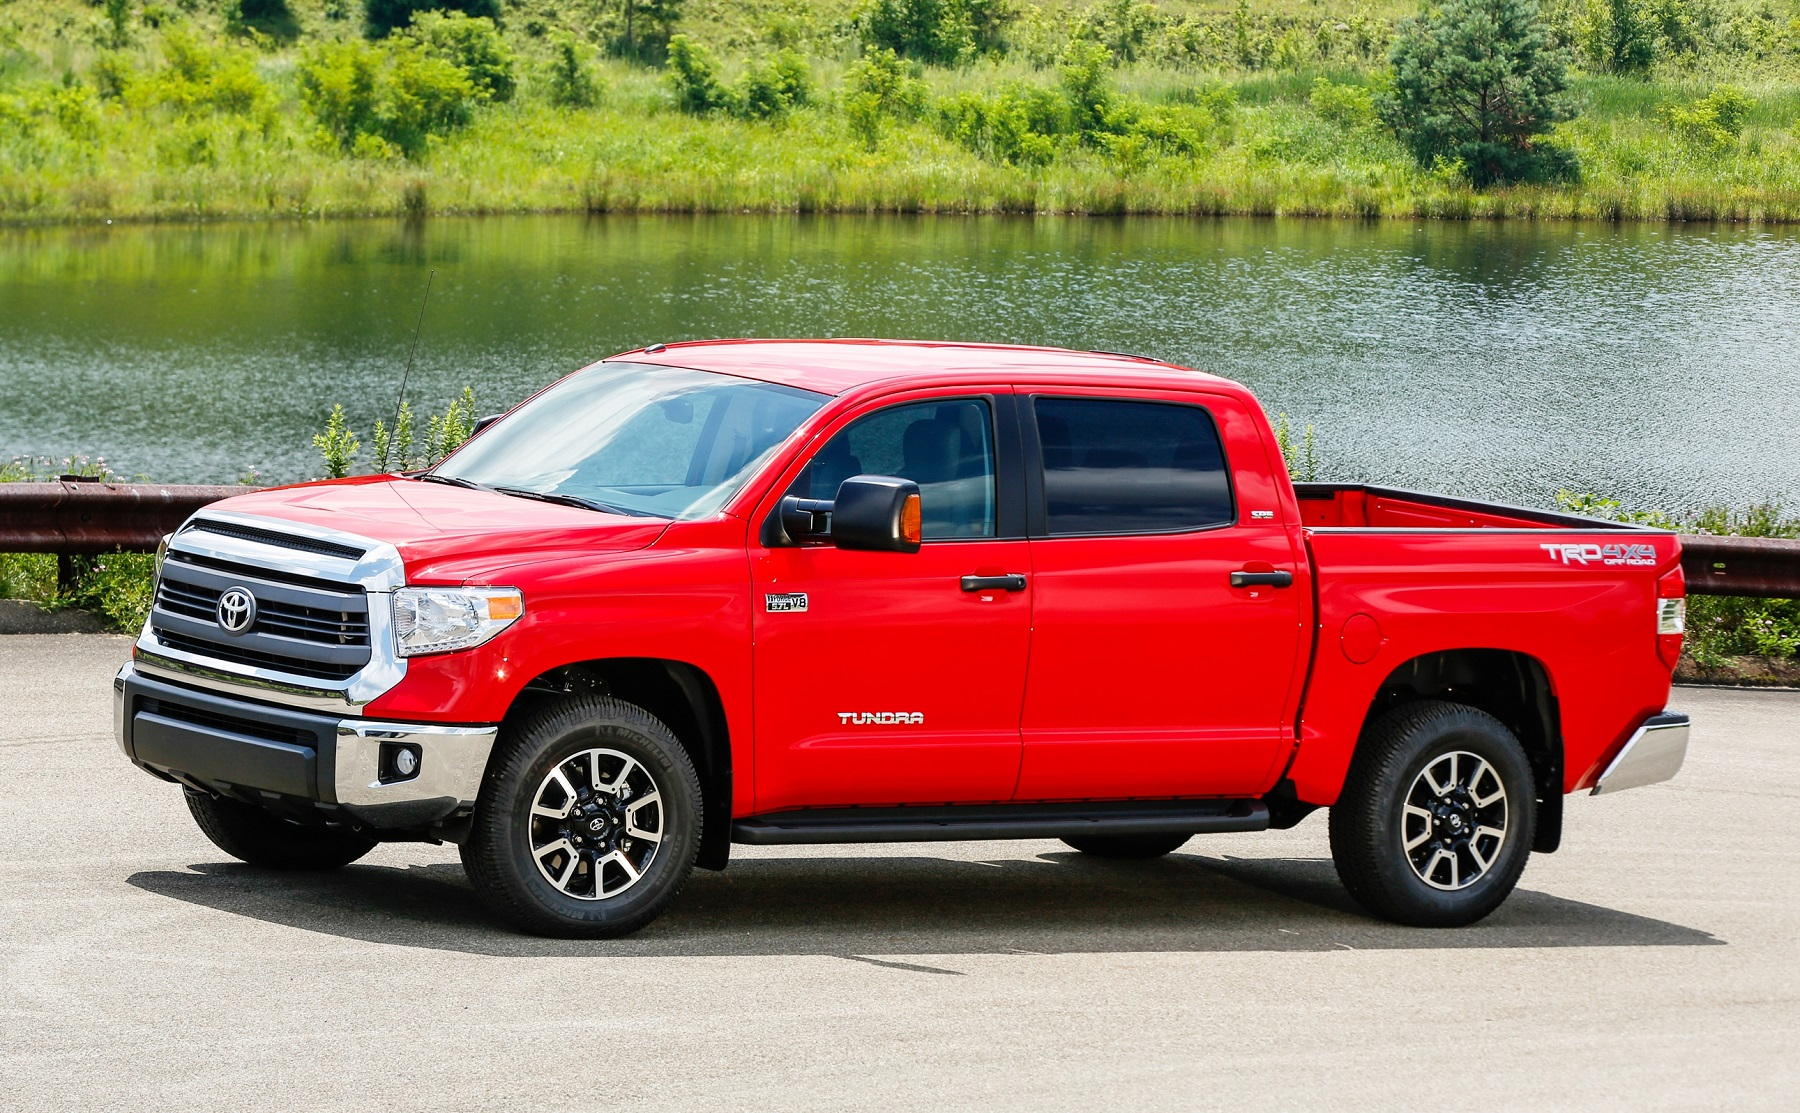 toyota boosts info entertainment in 2014 tundra truck. Black Bedroom Furniture Sets. Home Design Ideas